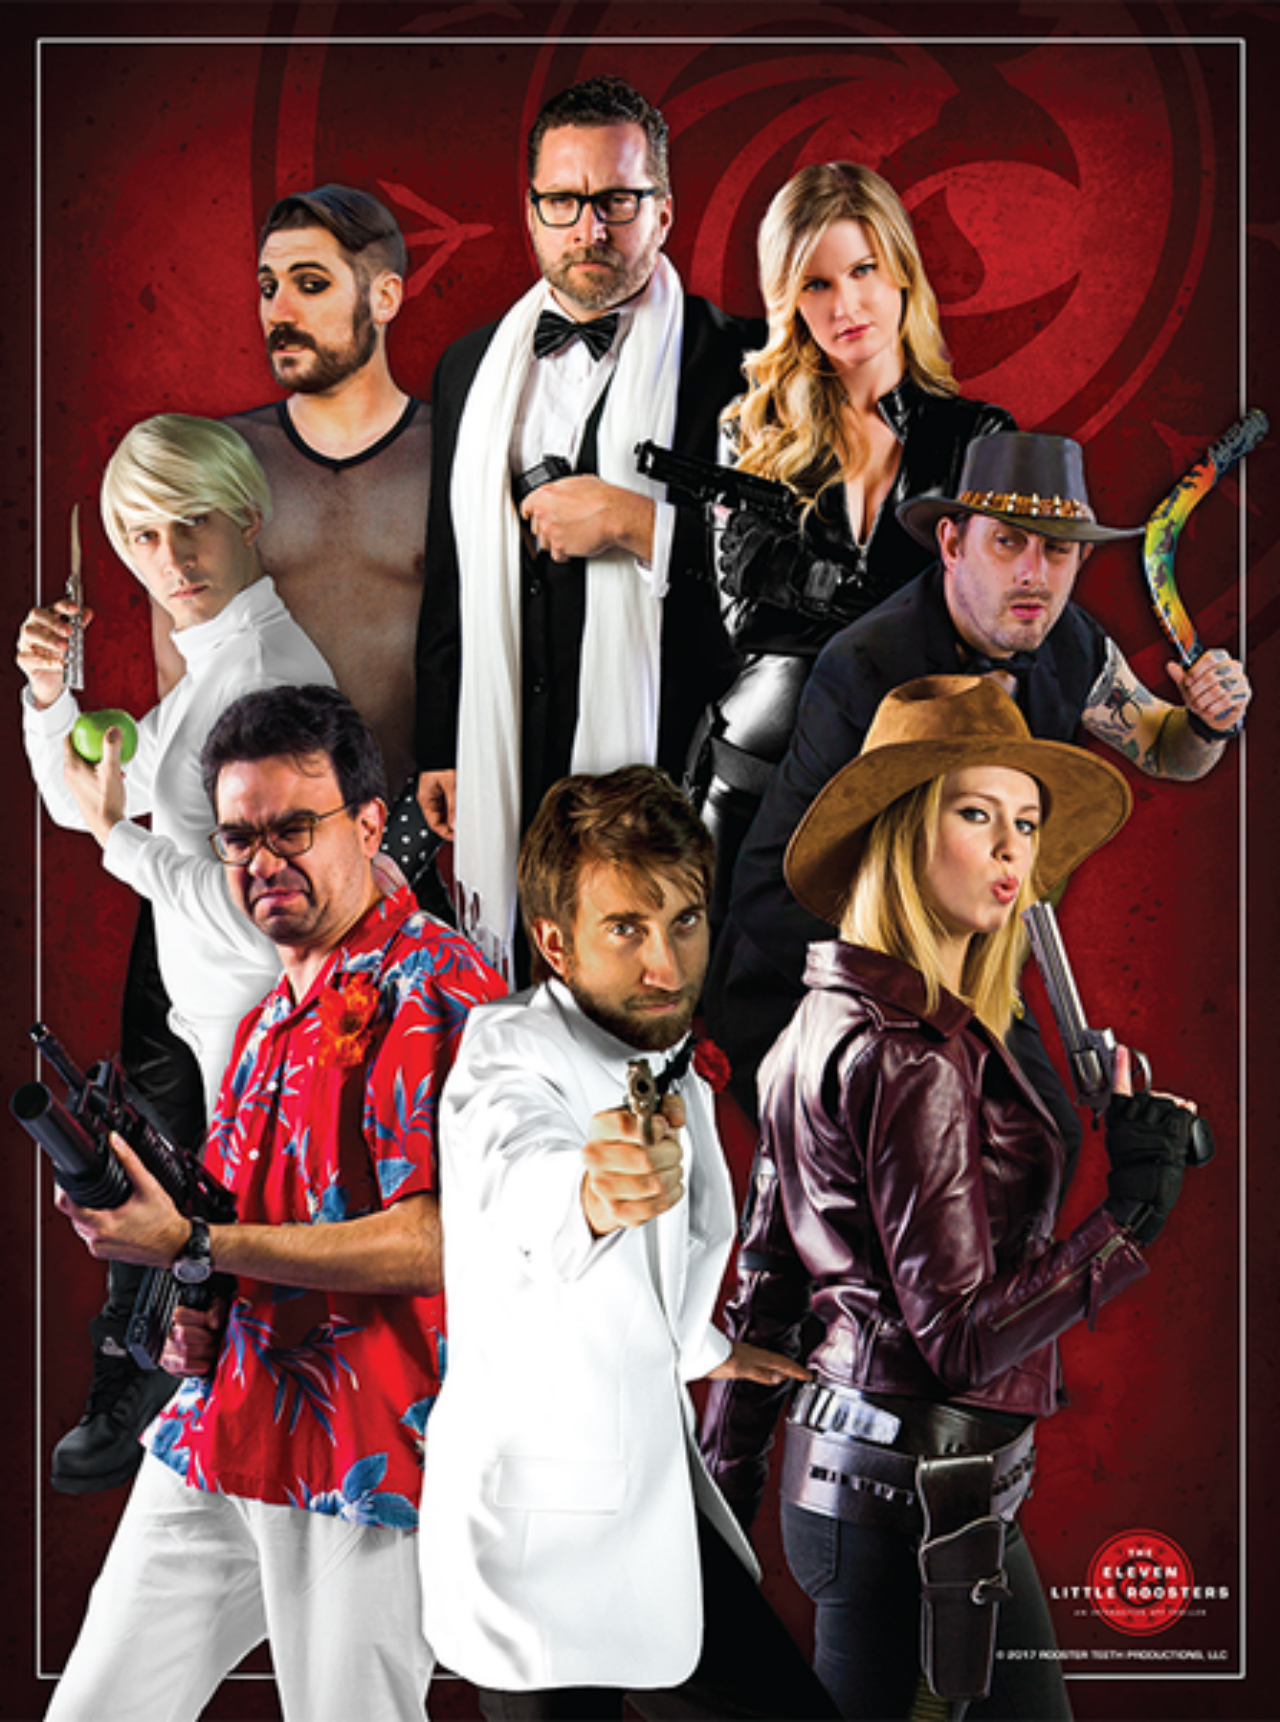 The Eleven Little Roosters | The Rooster Teeth Wiki | FANDOM powered